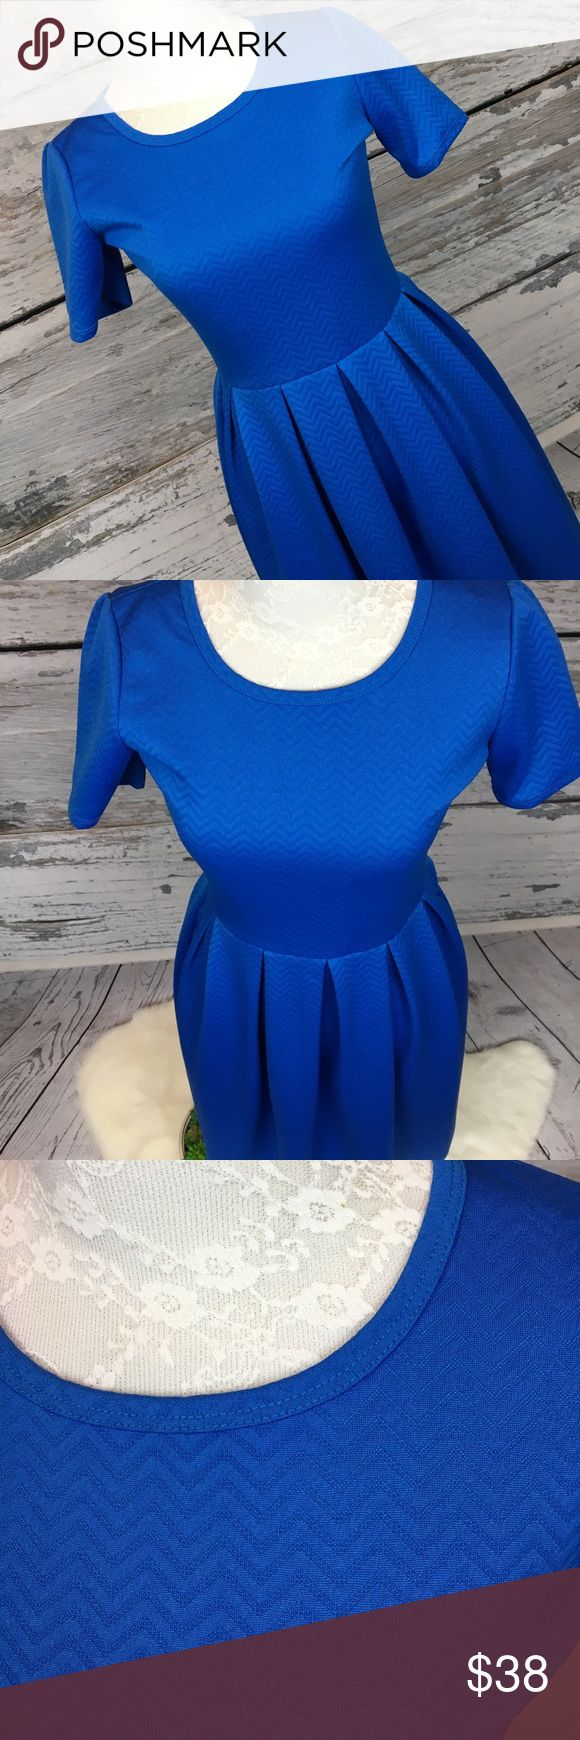 "•Lularoe• Amelia RARE Blue Chevron Dress Sz XS GORGEOUS Lularoe Amelia RARE Textured/Embossed Chevron Royal Blue Dress. Size XS. Side pockets. Zippered back. Excellent condition from a smoke free home!!  Approximate measurements (flat): Armpit to armpit: 16"" Armpit to bottom: 30.5"" Shoulder to bottom: 38"" At waist: 13"" (unstretched) LuLaRoe Dresses"